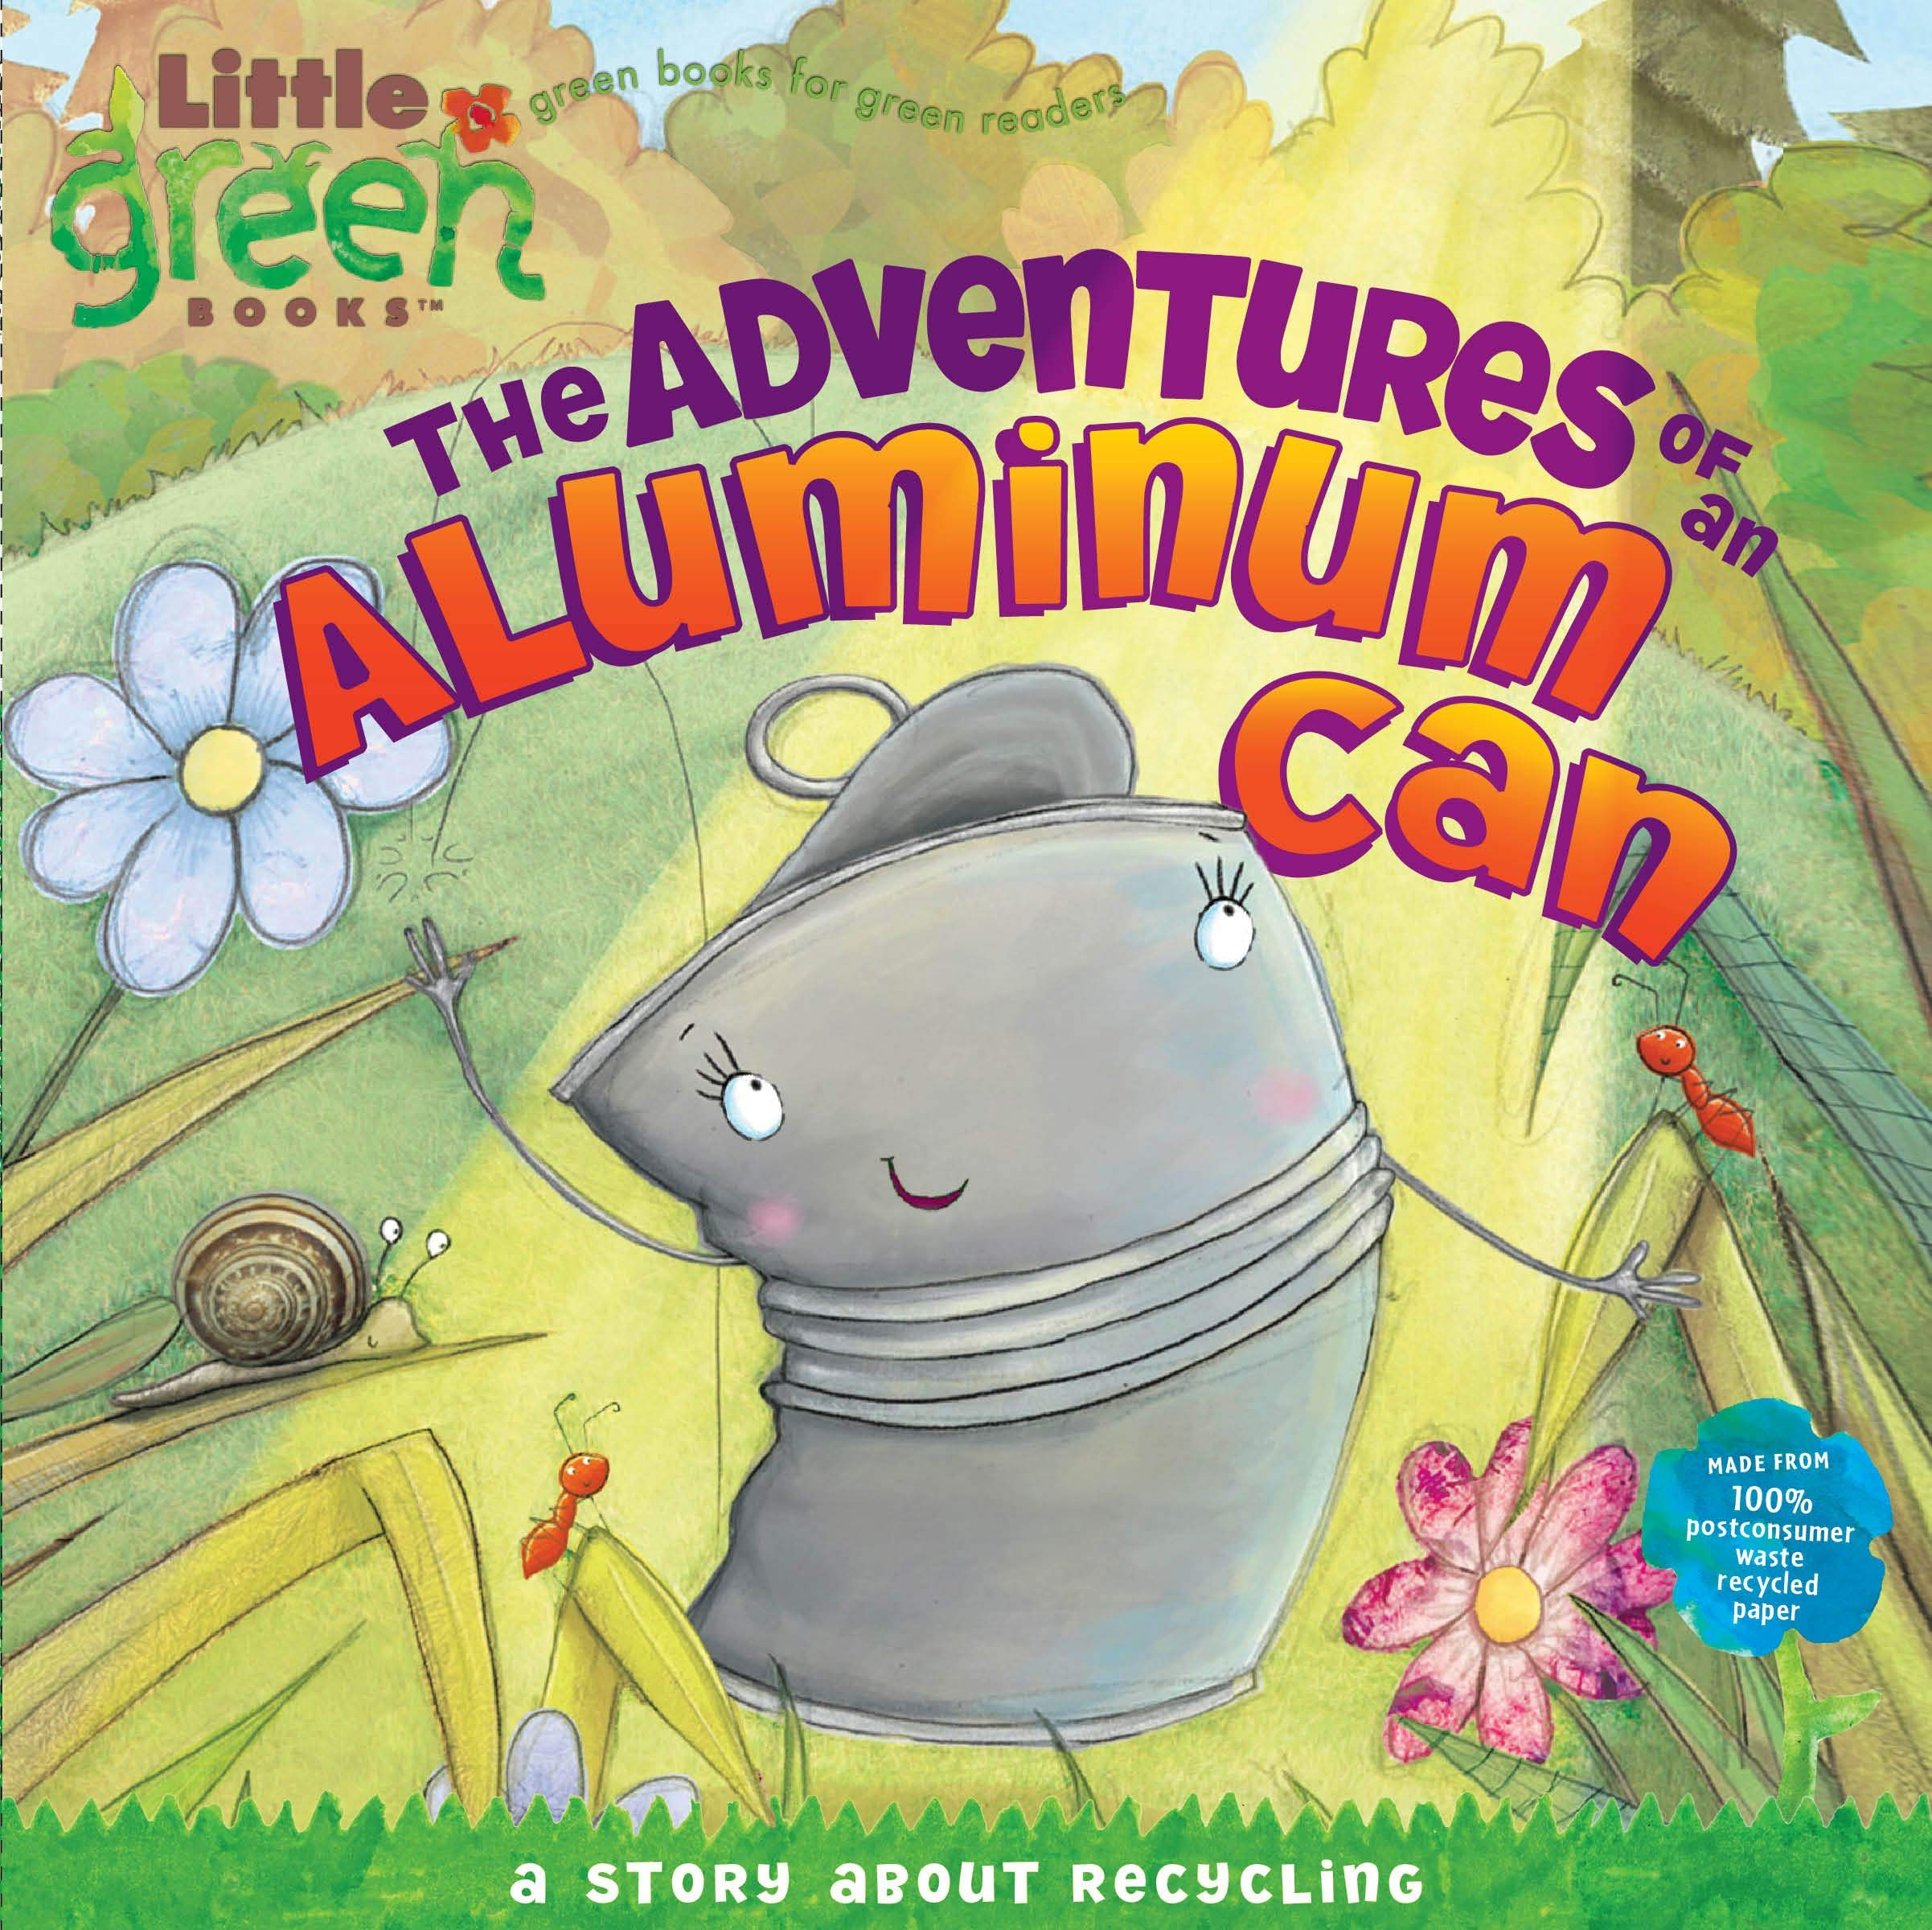 The Adventures of an Aluminum Can: A Story About Recycling (Little Green Books)